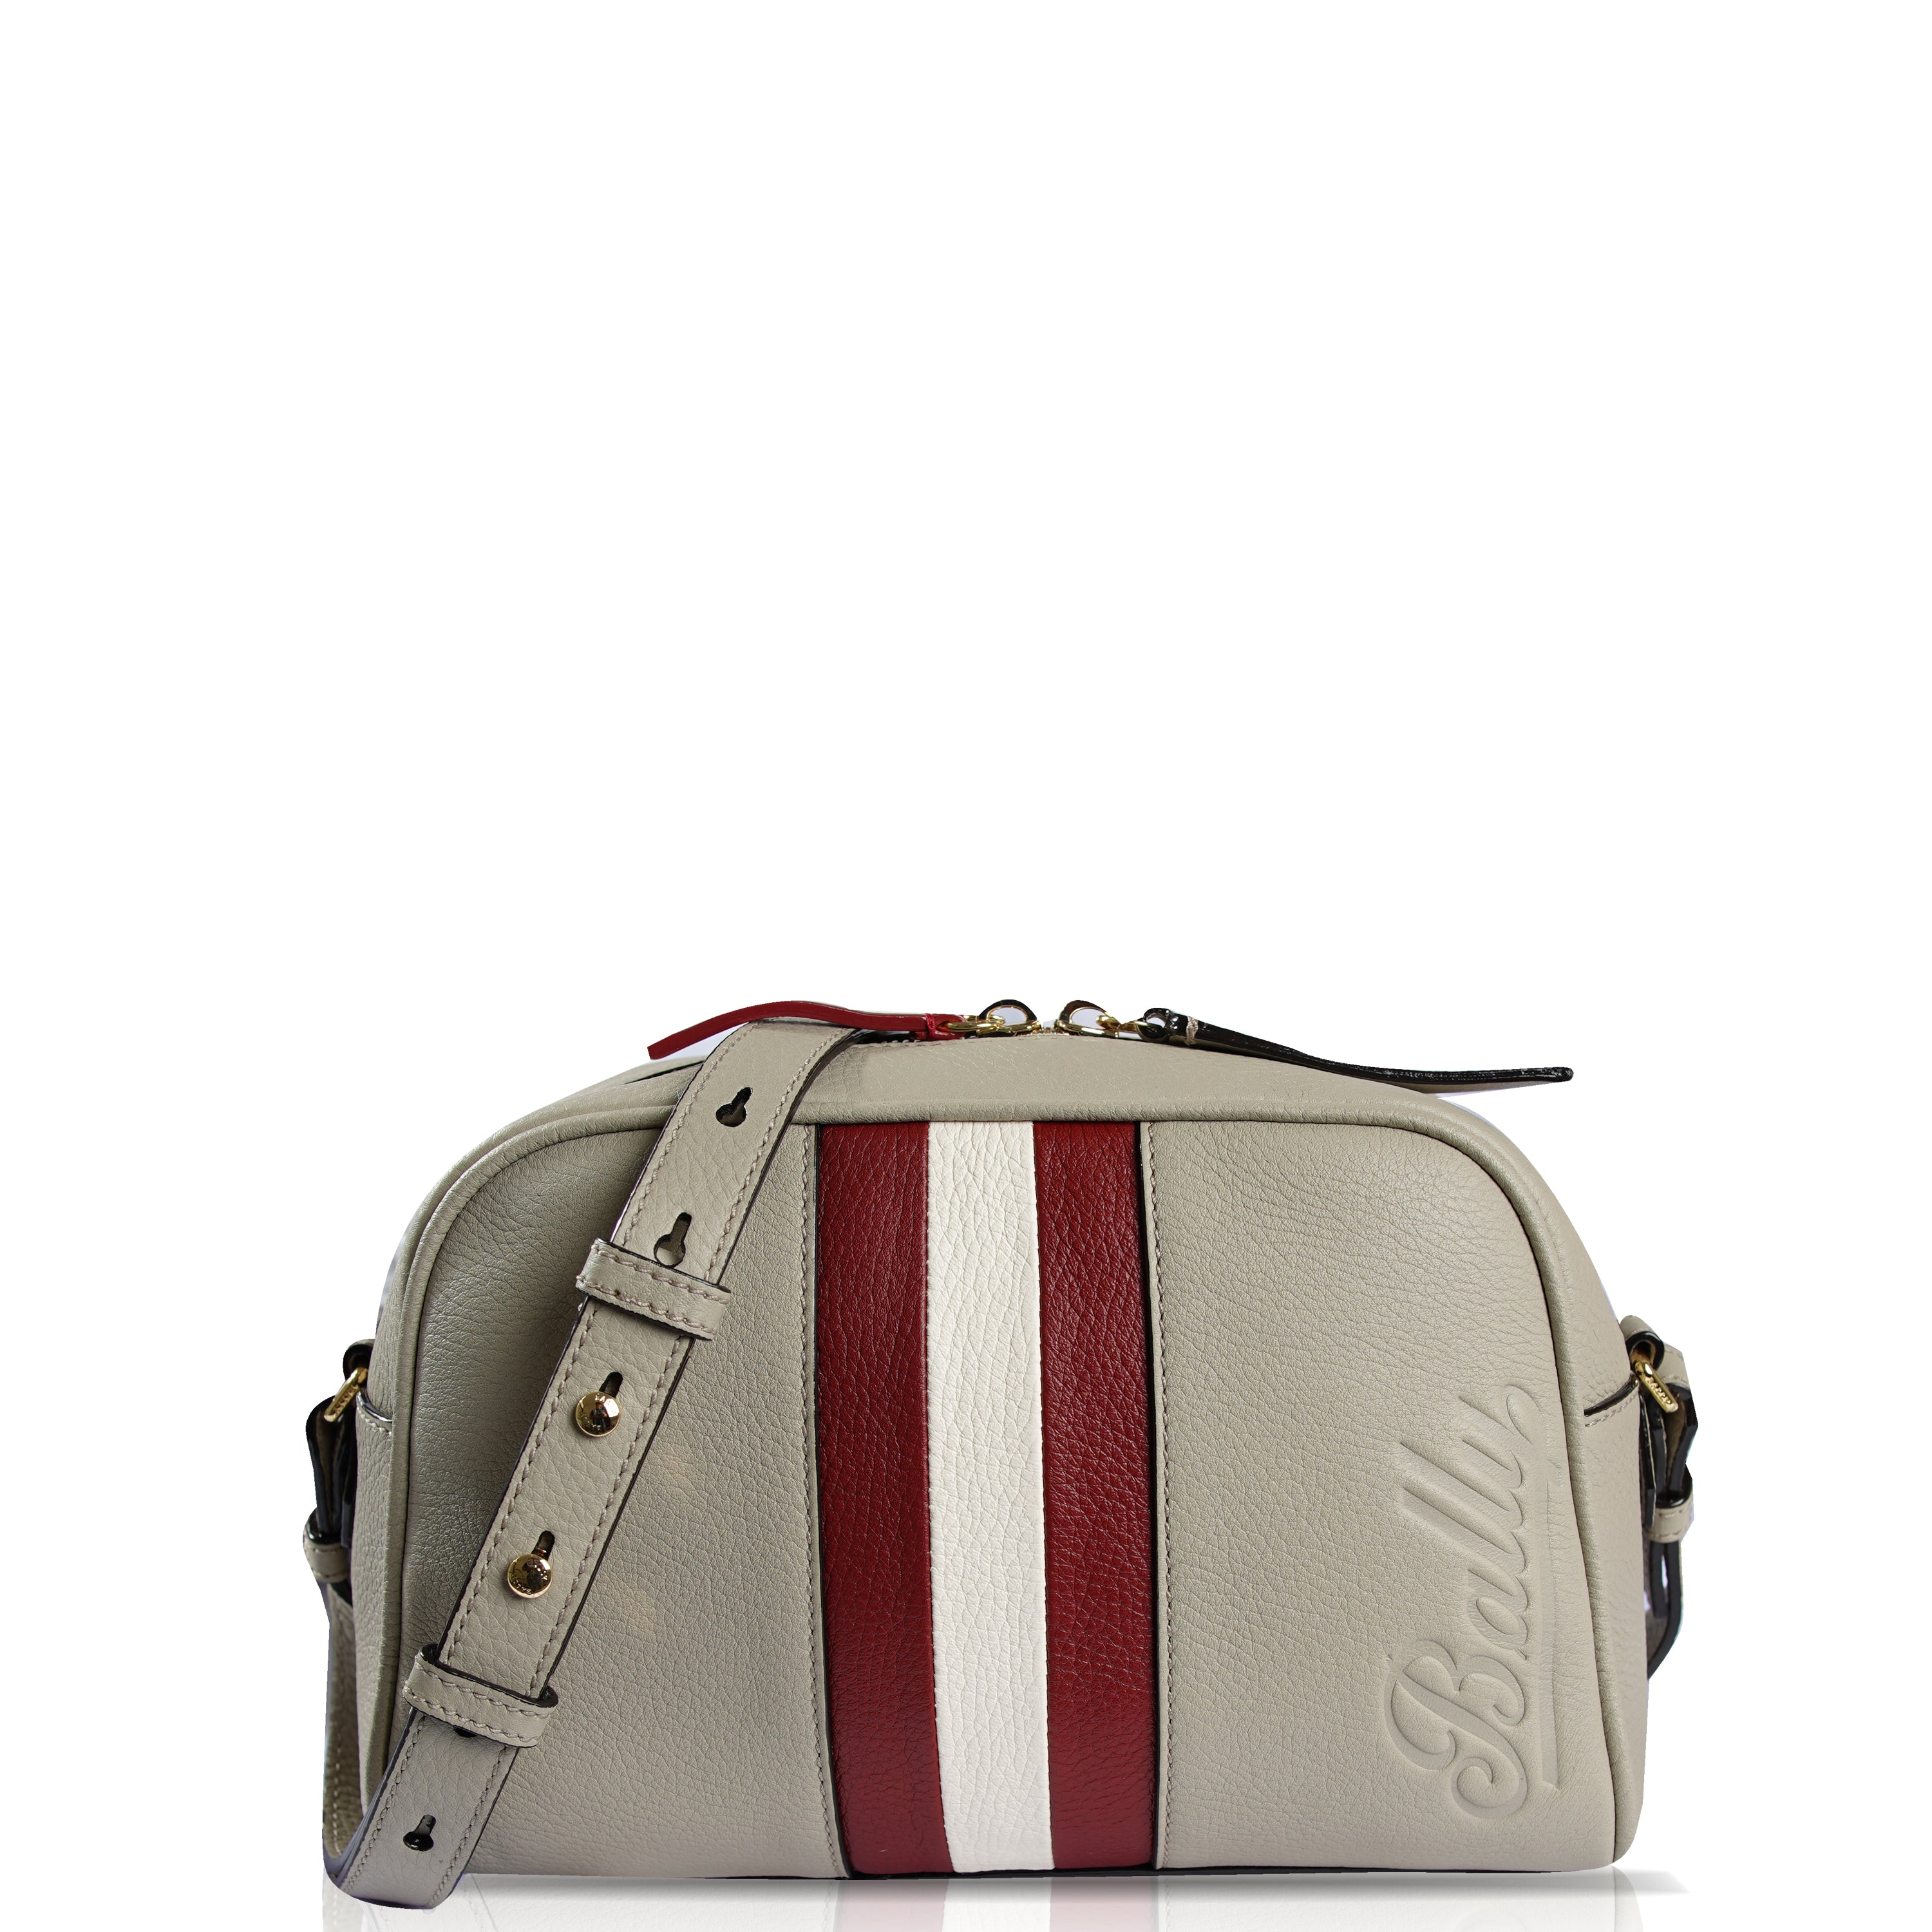 Talia Mini Crossbody Bag Beige